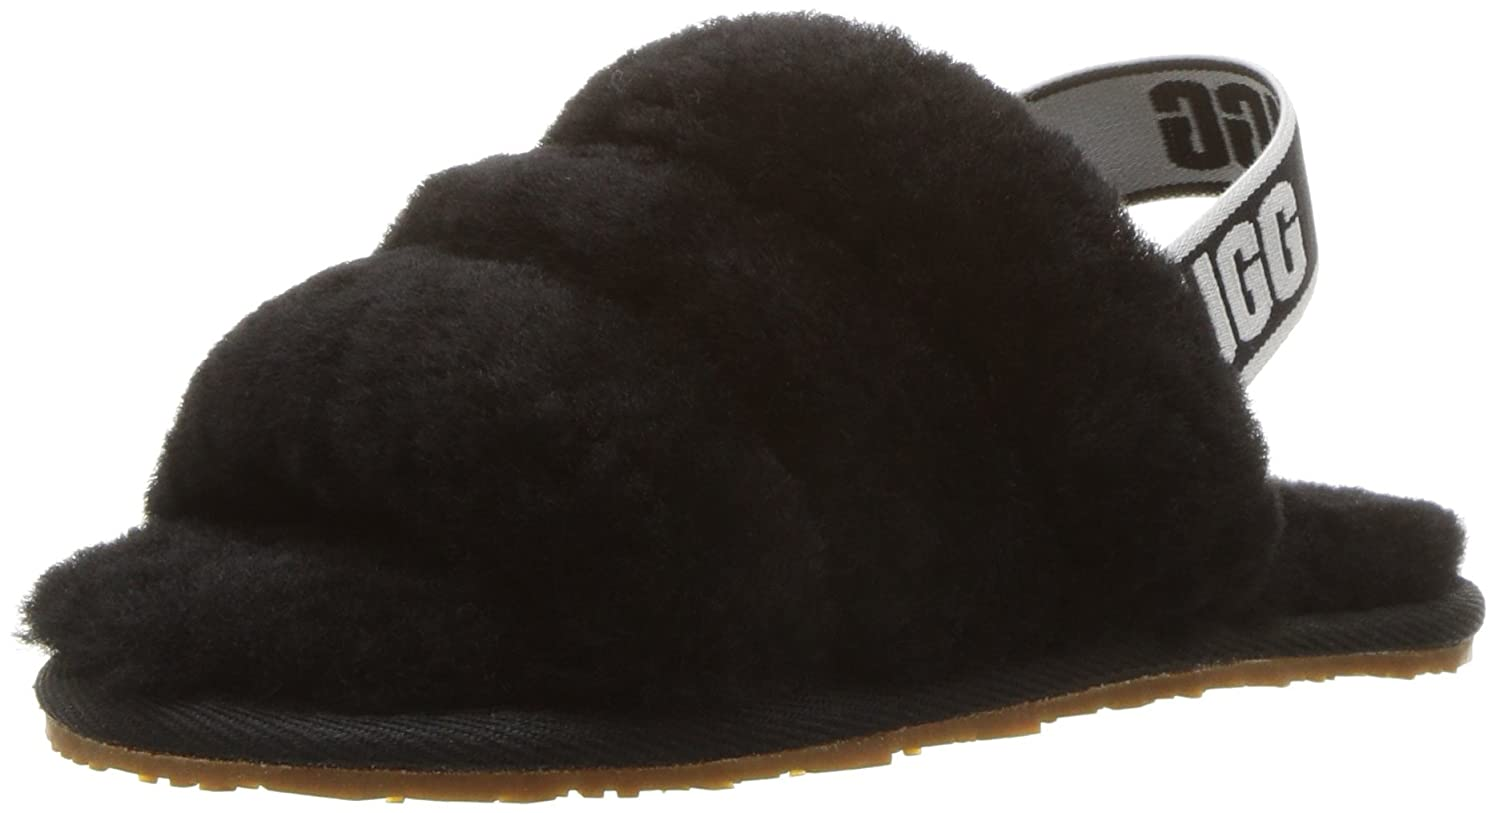 39eca4f36 Amazon.com | UGG Kids' T Fluff Yeah Slide Sandal | Sandals